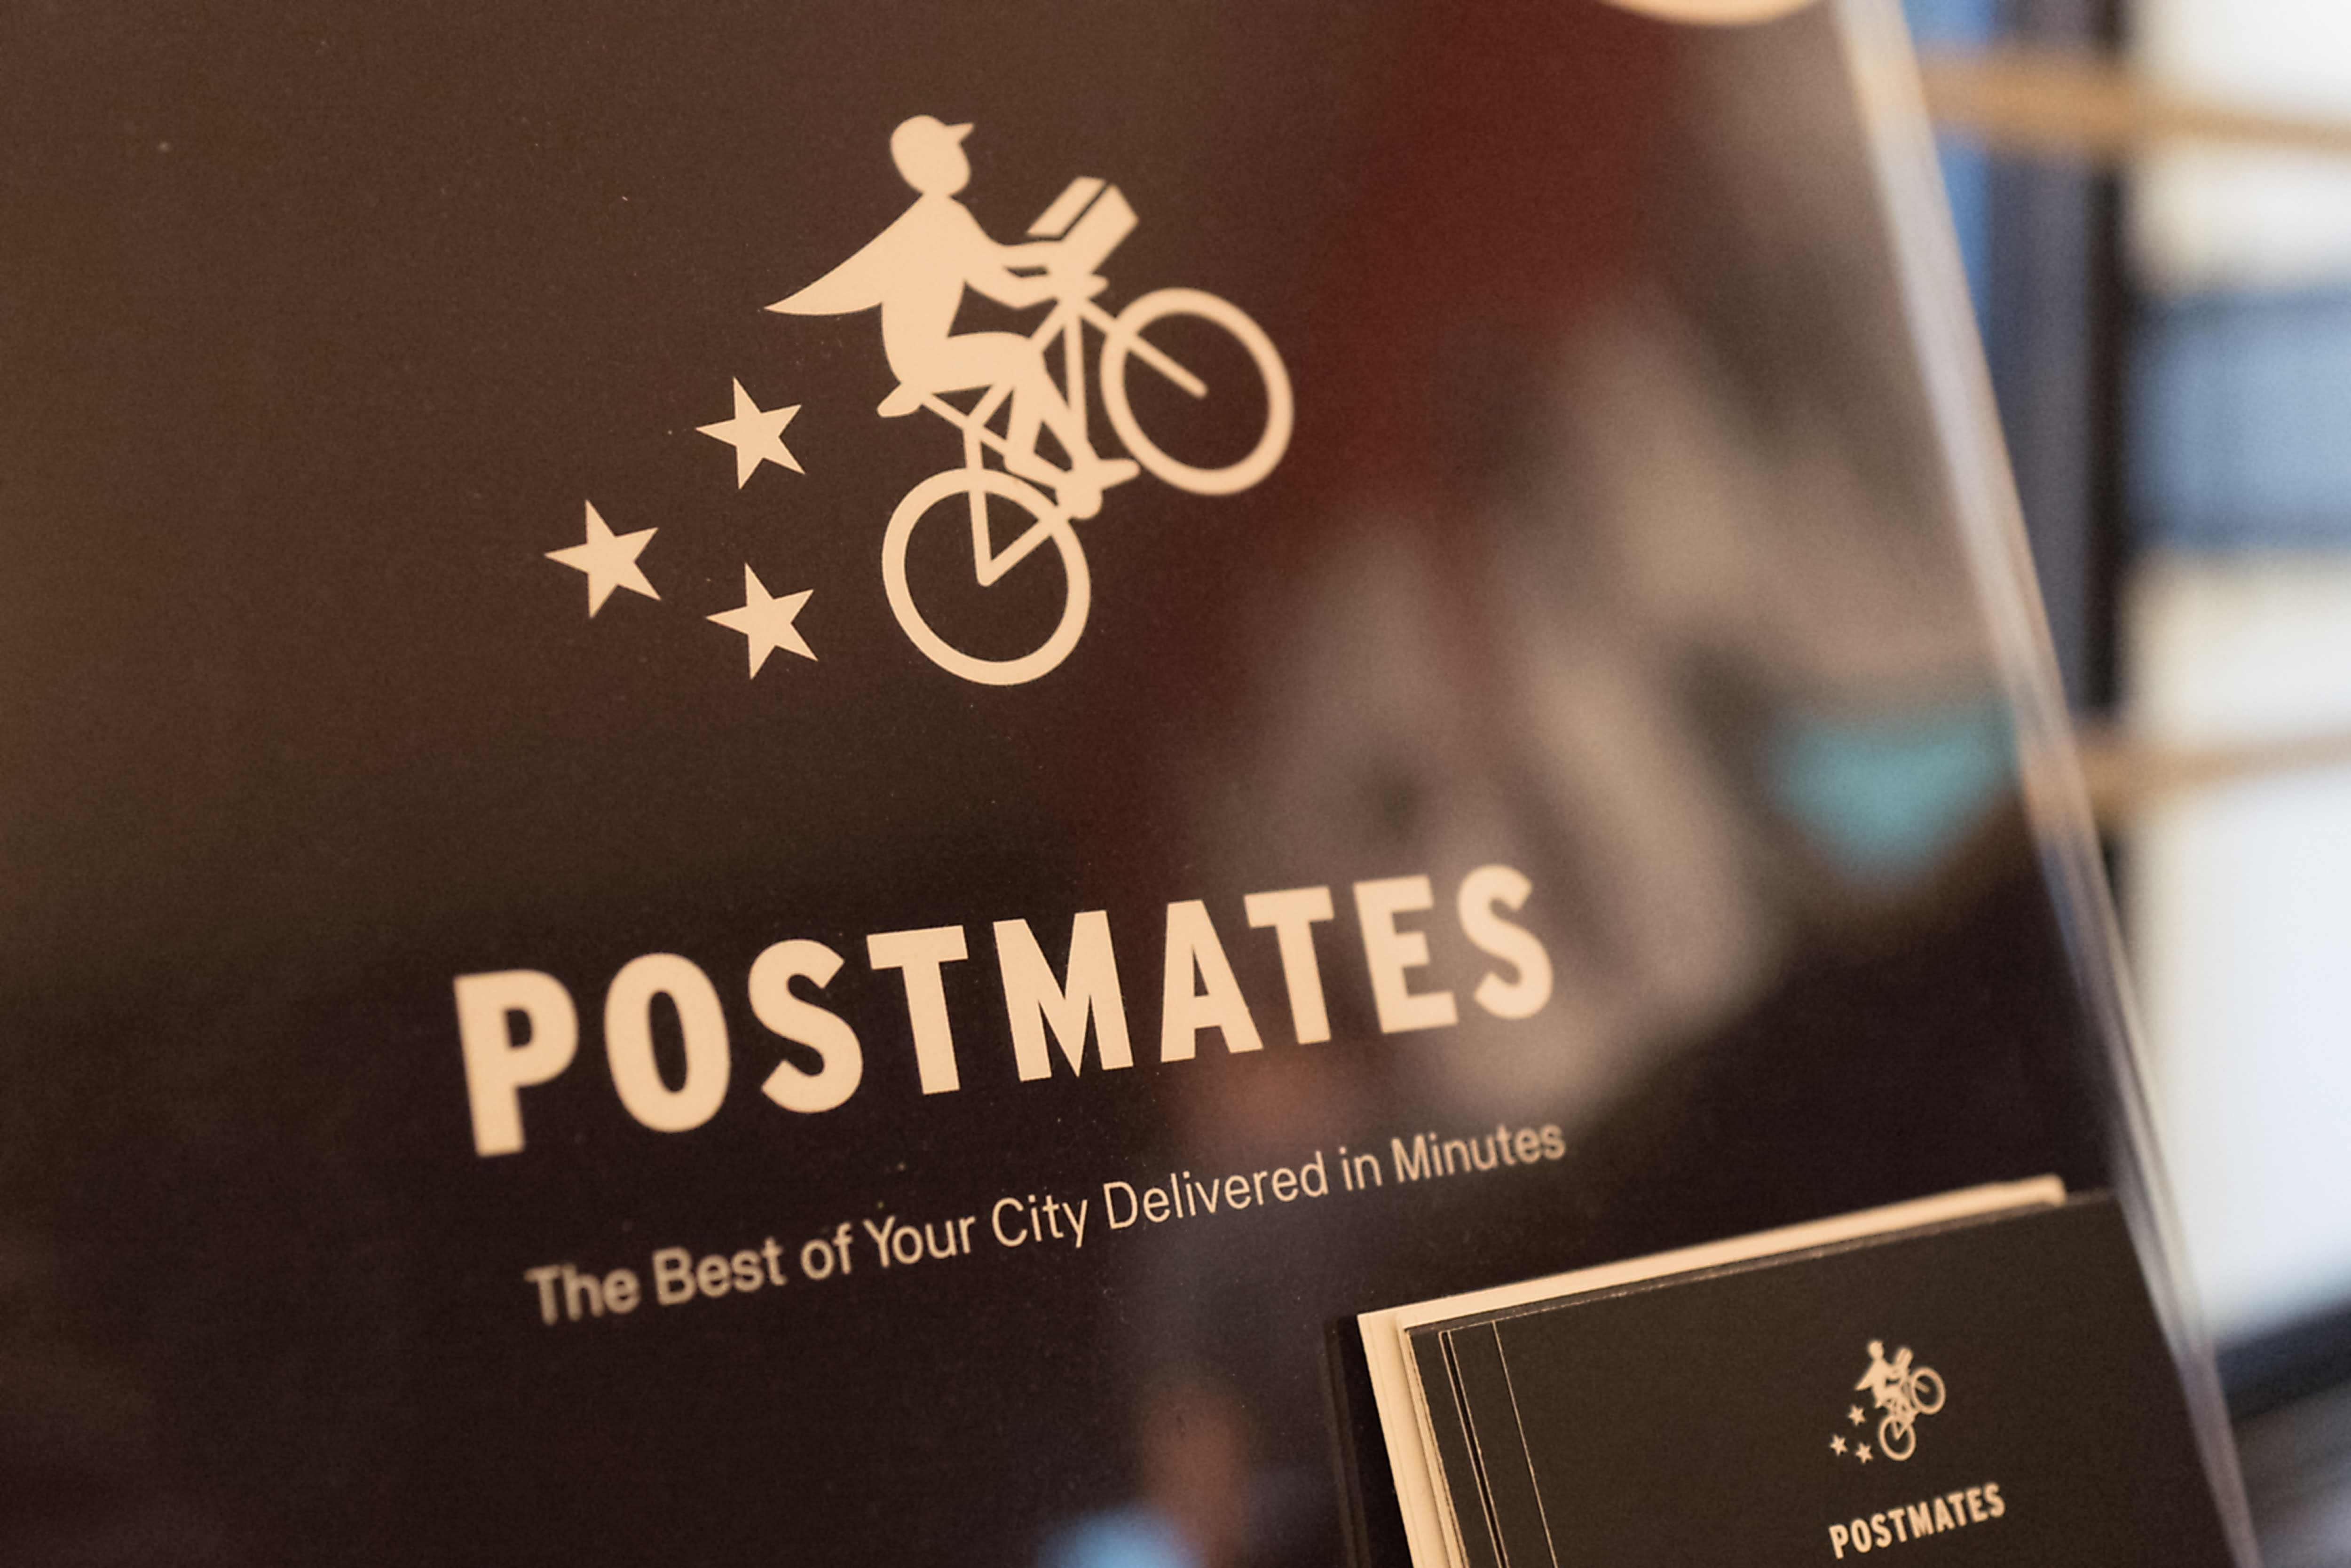 Uber and Postmates reportedly agree on a $2.65 billion all-stock deal - CNBC